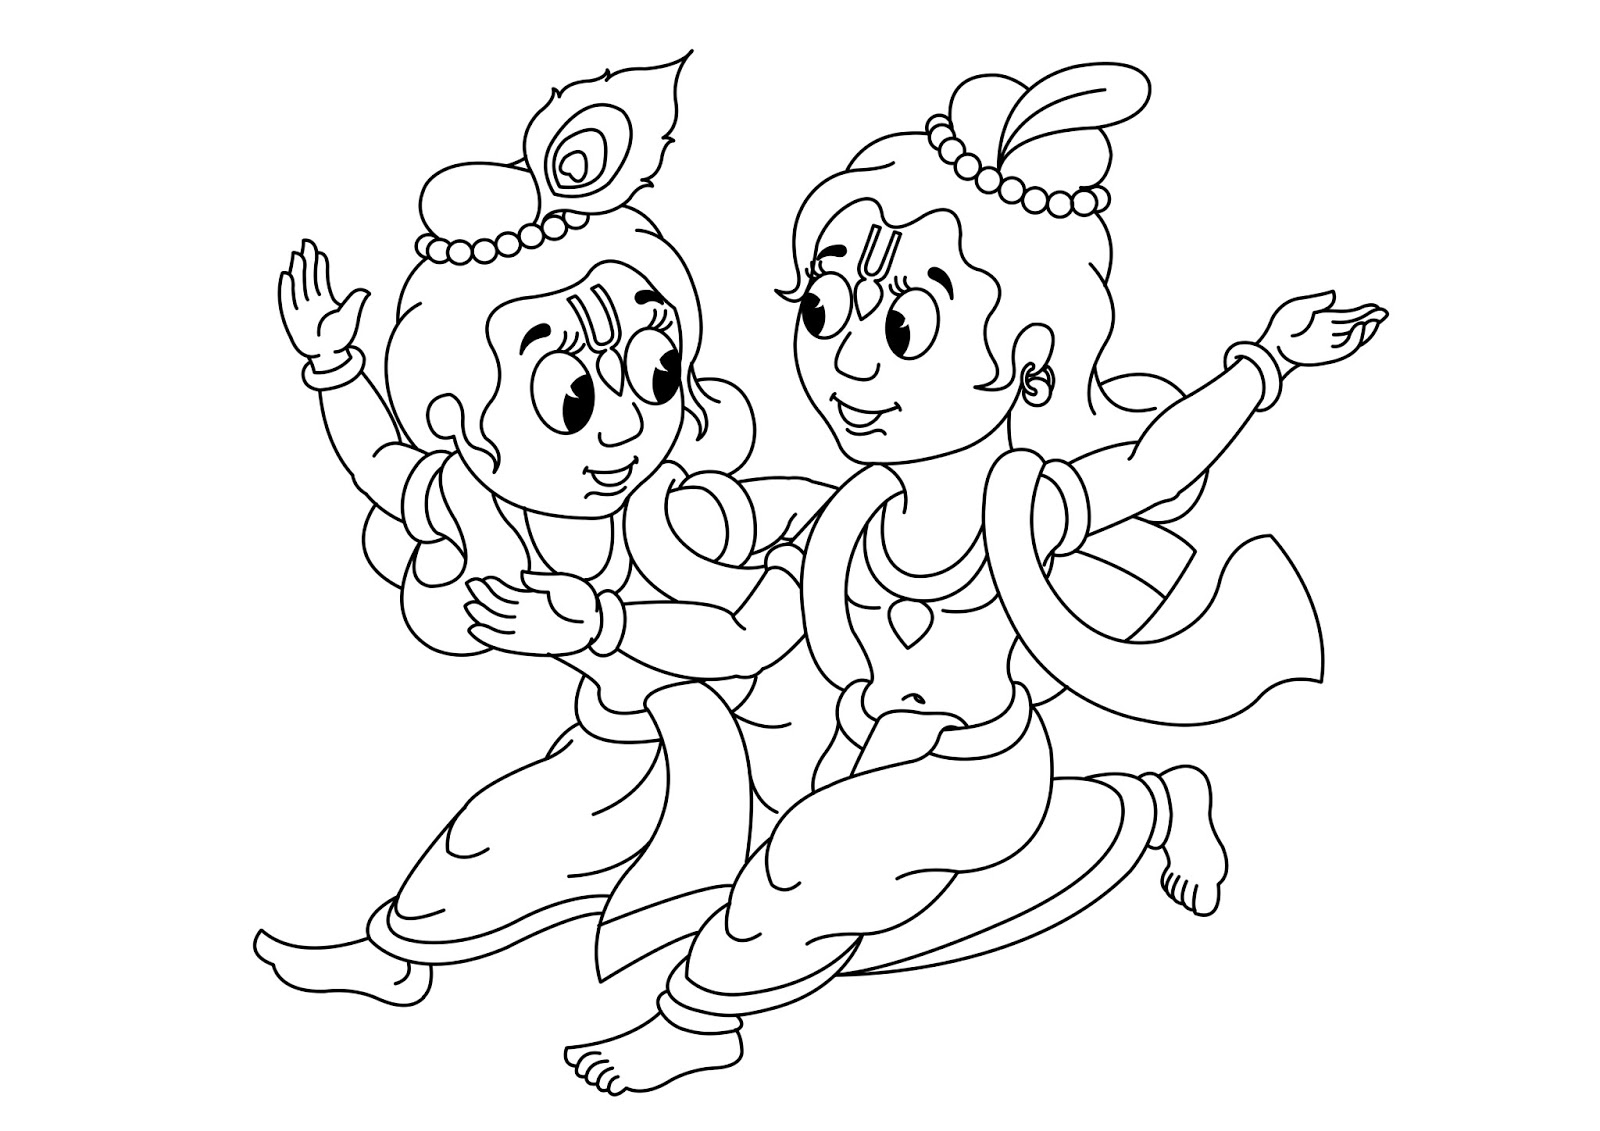 bhagavat chintan das bhikaji sri krishna balarama line colour hd wallpapers little krishna coloring page - Baby Krishna Images Coloring Pages